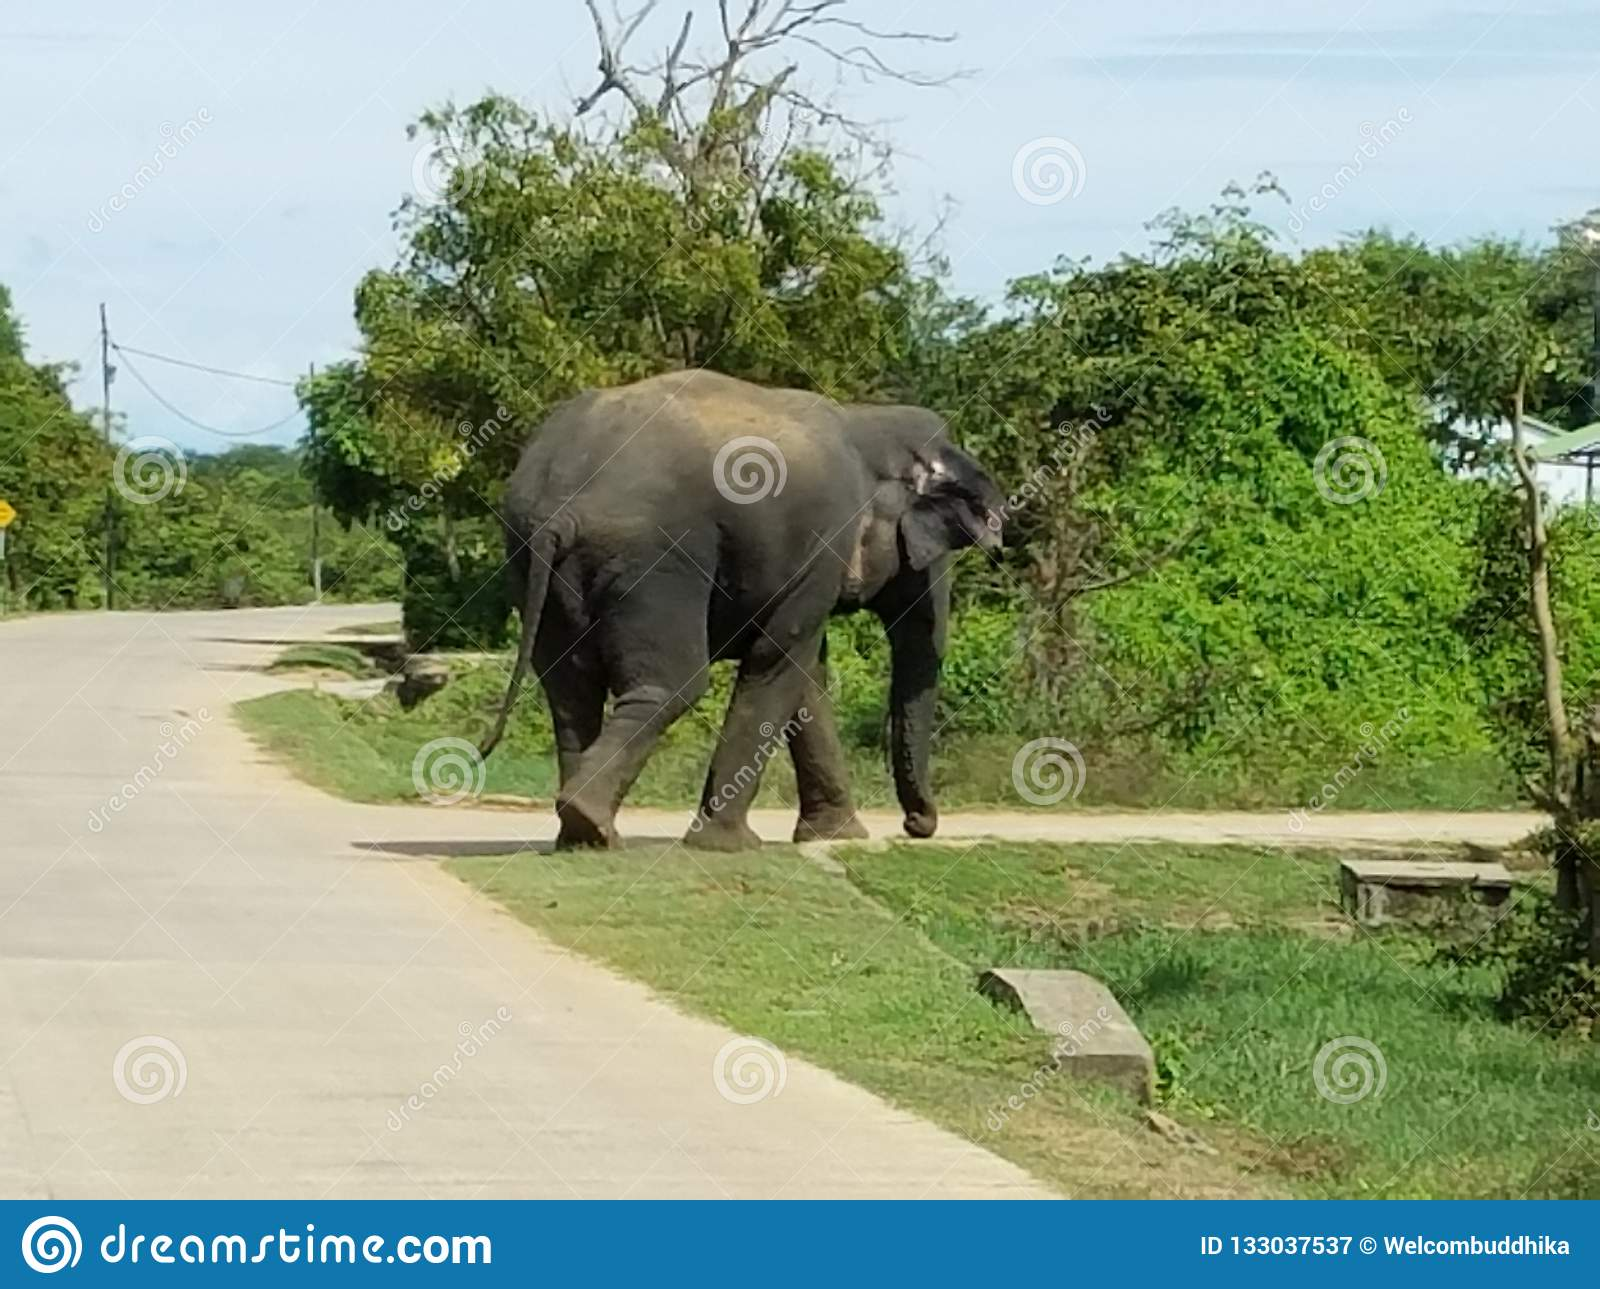 Sri Lankan Elephant is walking across a road